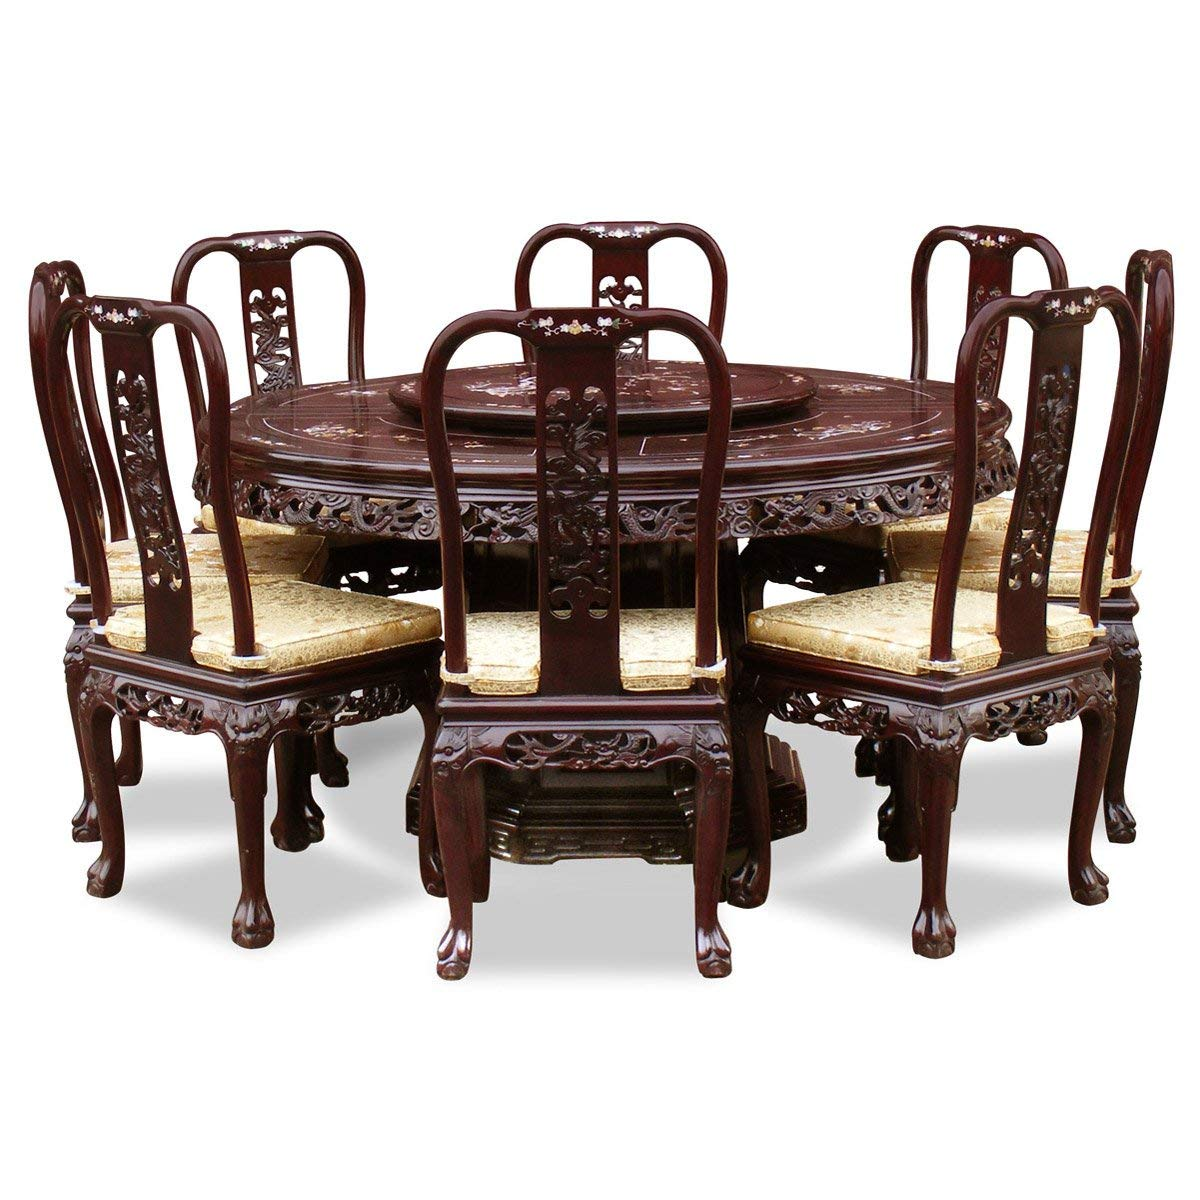 04734d71dc074 Get Quotations · ChinaFurnitureOnline Rosewood Dining Table